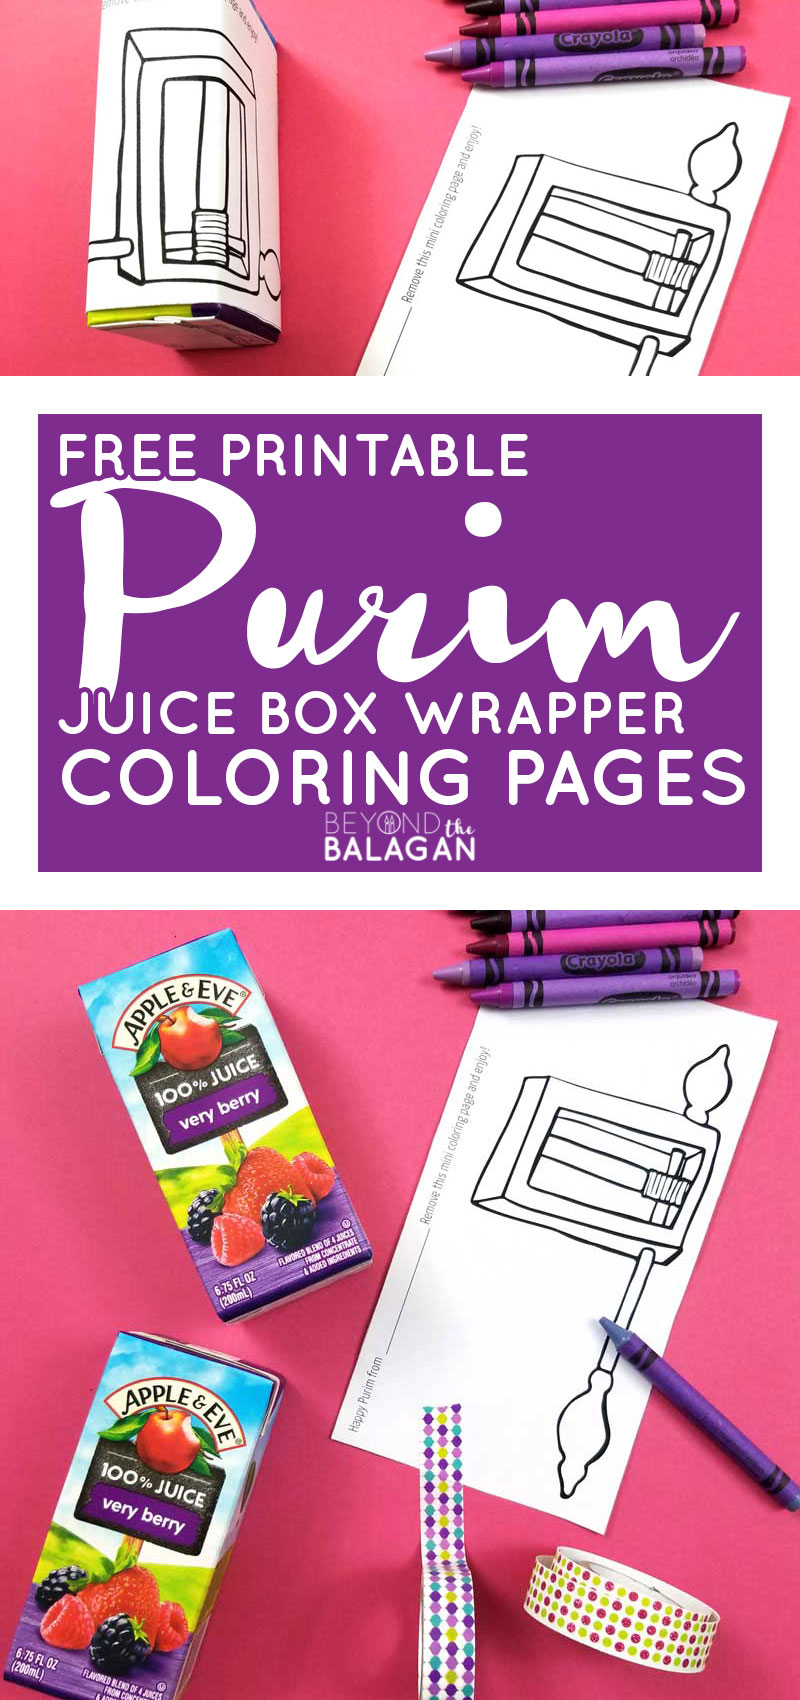 Click for a free printable Purim coloring page and an adorable, frugal, allergy friendly mishloach manot idea for Purim!